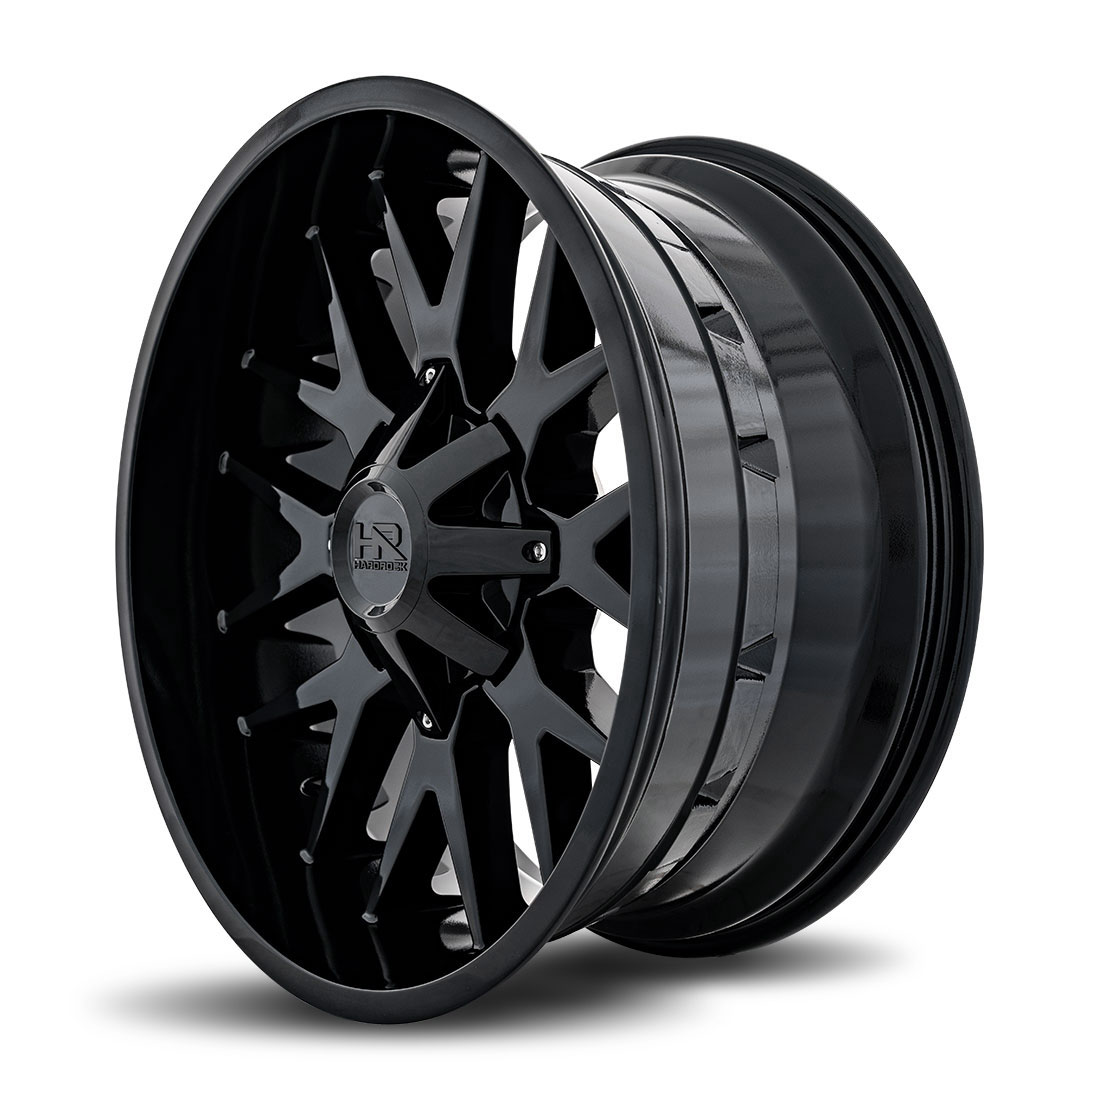 Hardrock Offroad Wheels H700 Affliction - Gloss Black - 22x10